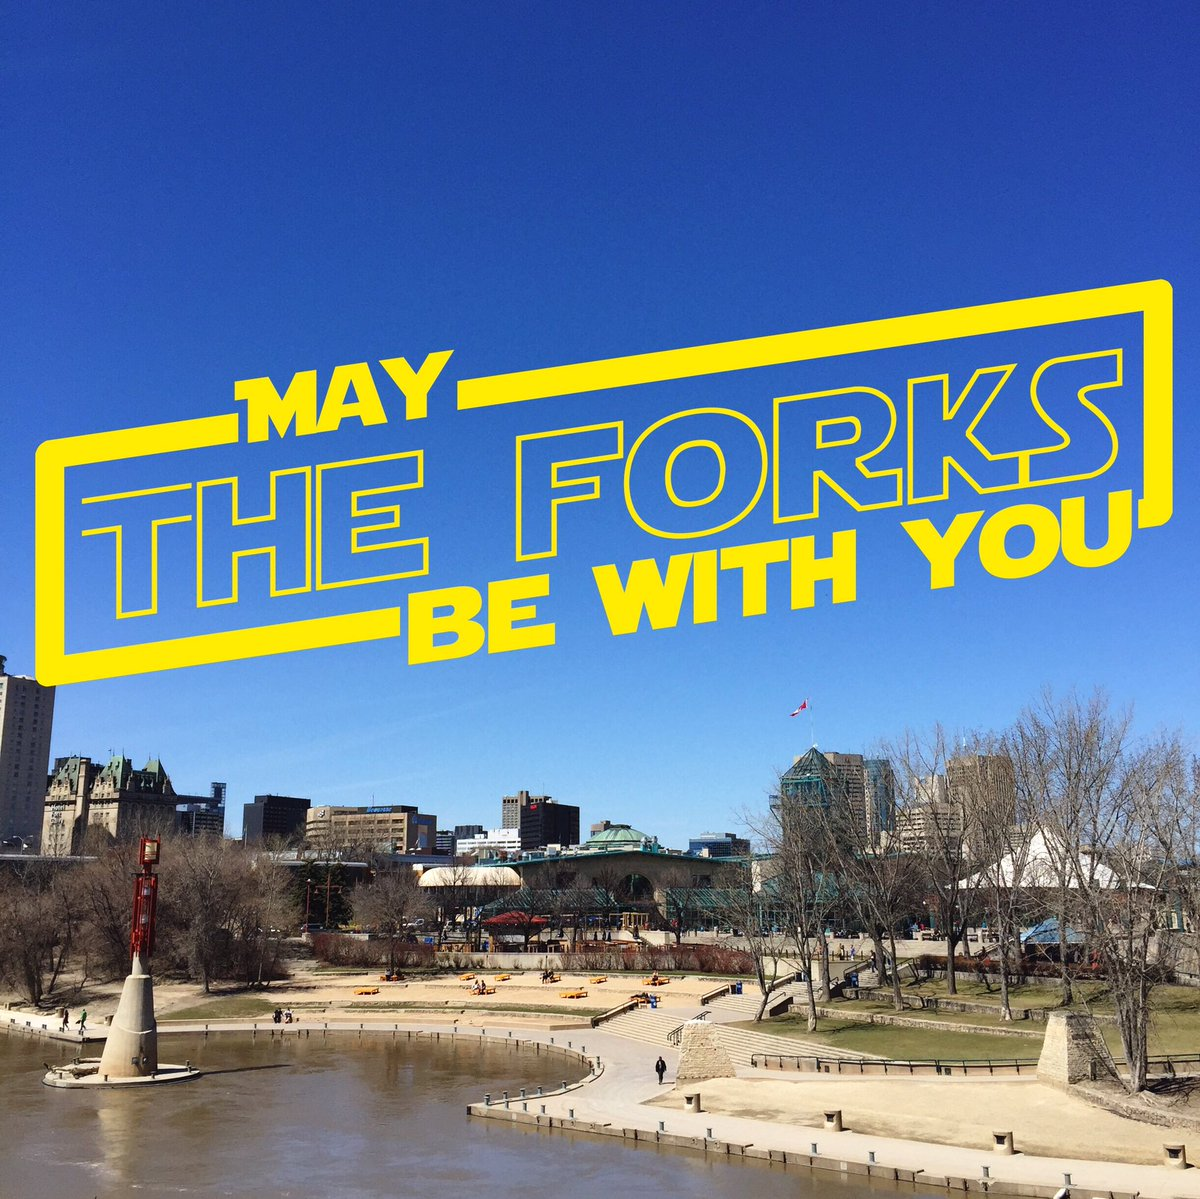 Today might be one of our favourite days #MayThe4thBeWithYou https://t.co/T6BCpeVsiS